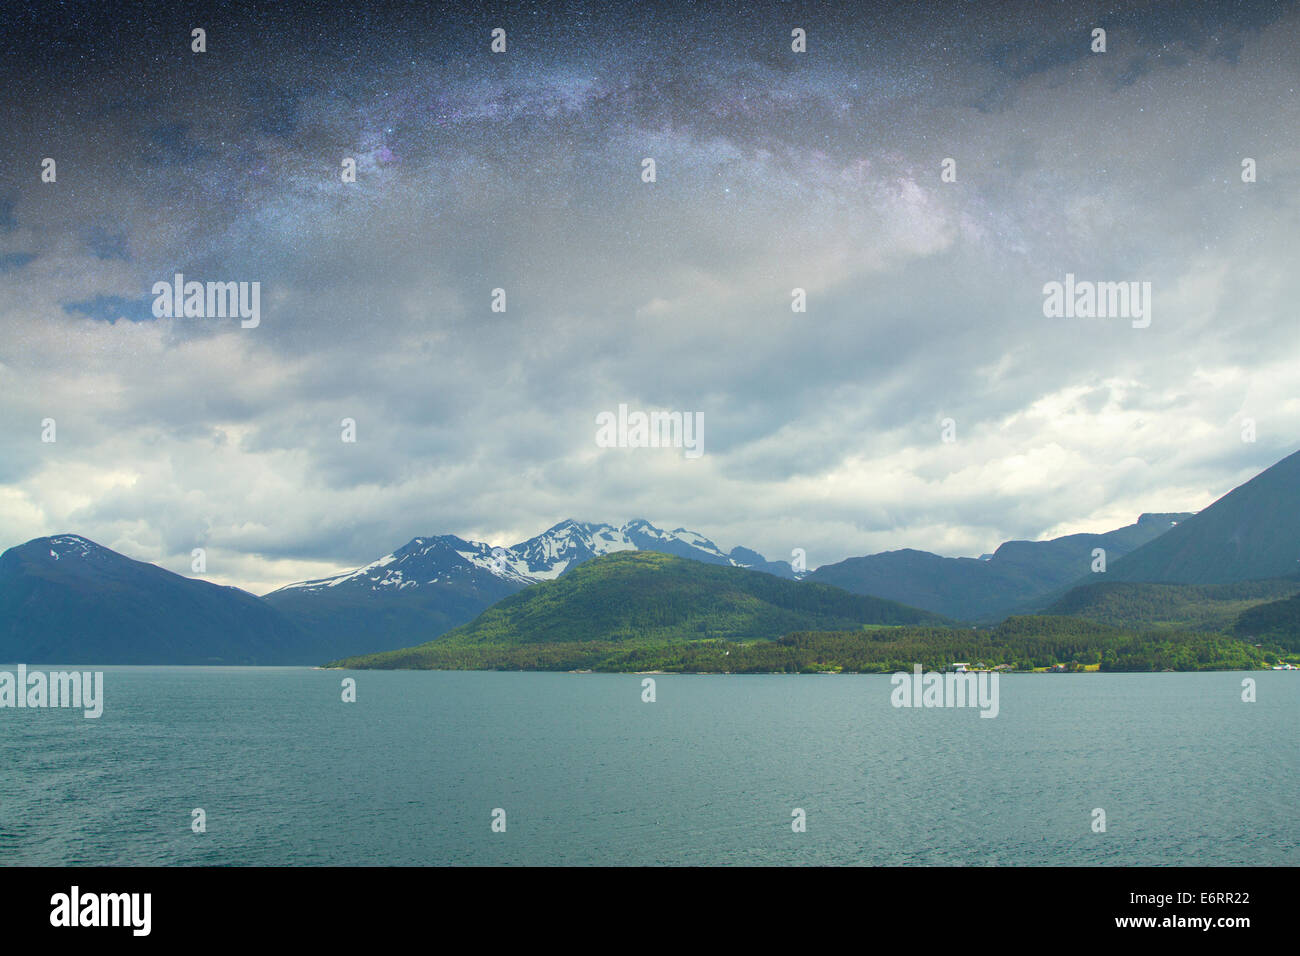 Night Fjord In The Most Beautiful Place On Earth Stock Photo Royalty Free Image 73052394 Alamy